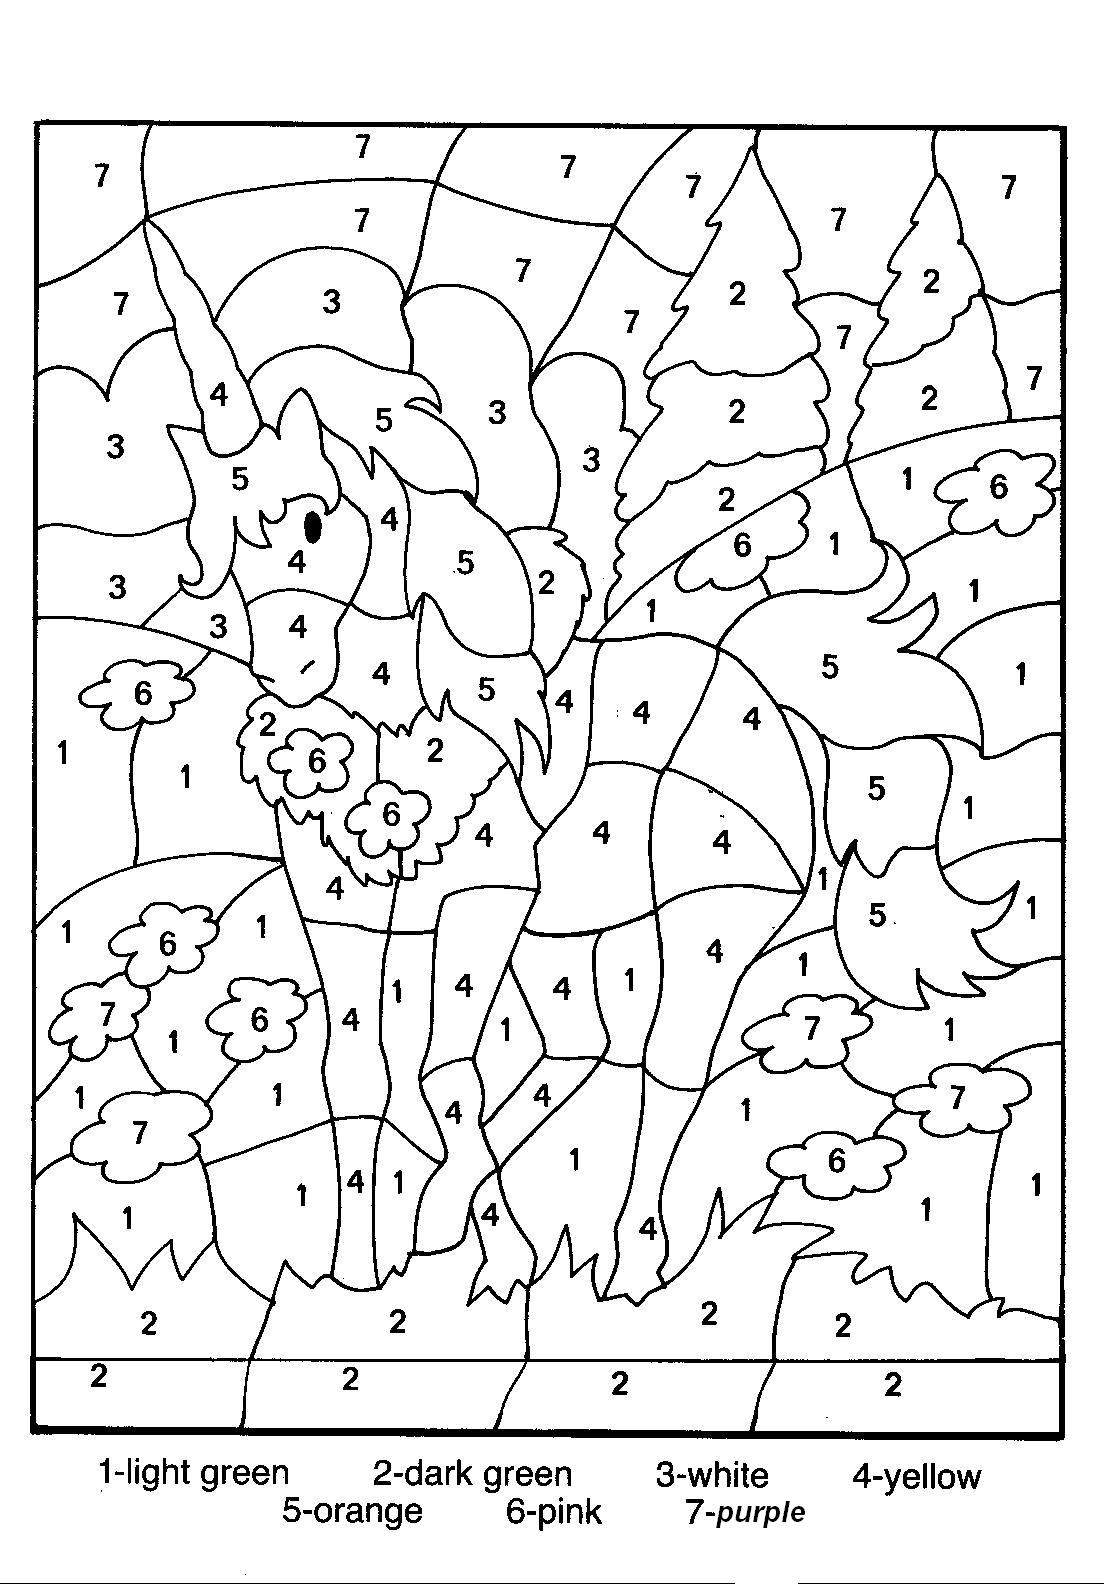 Number Coloring Pages (14)   Coloring Kids